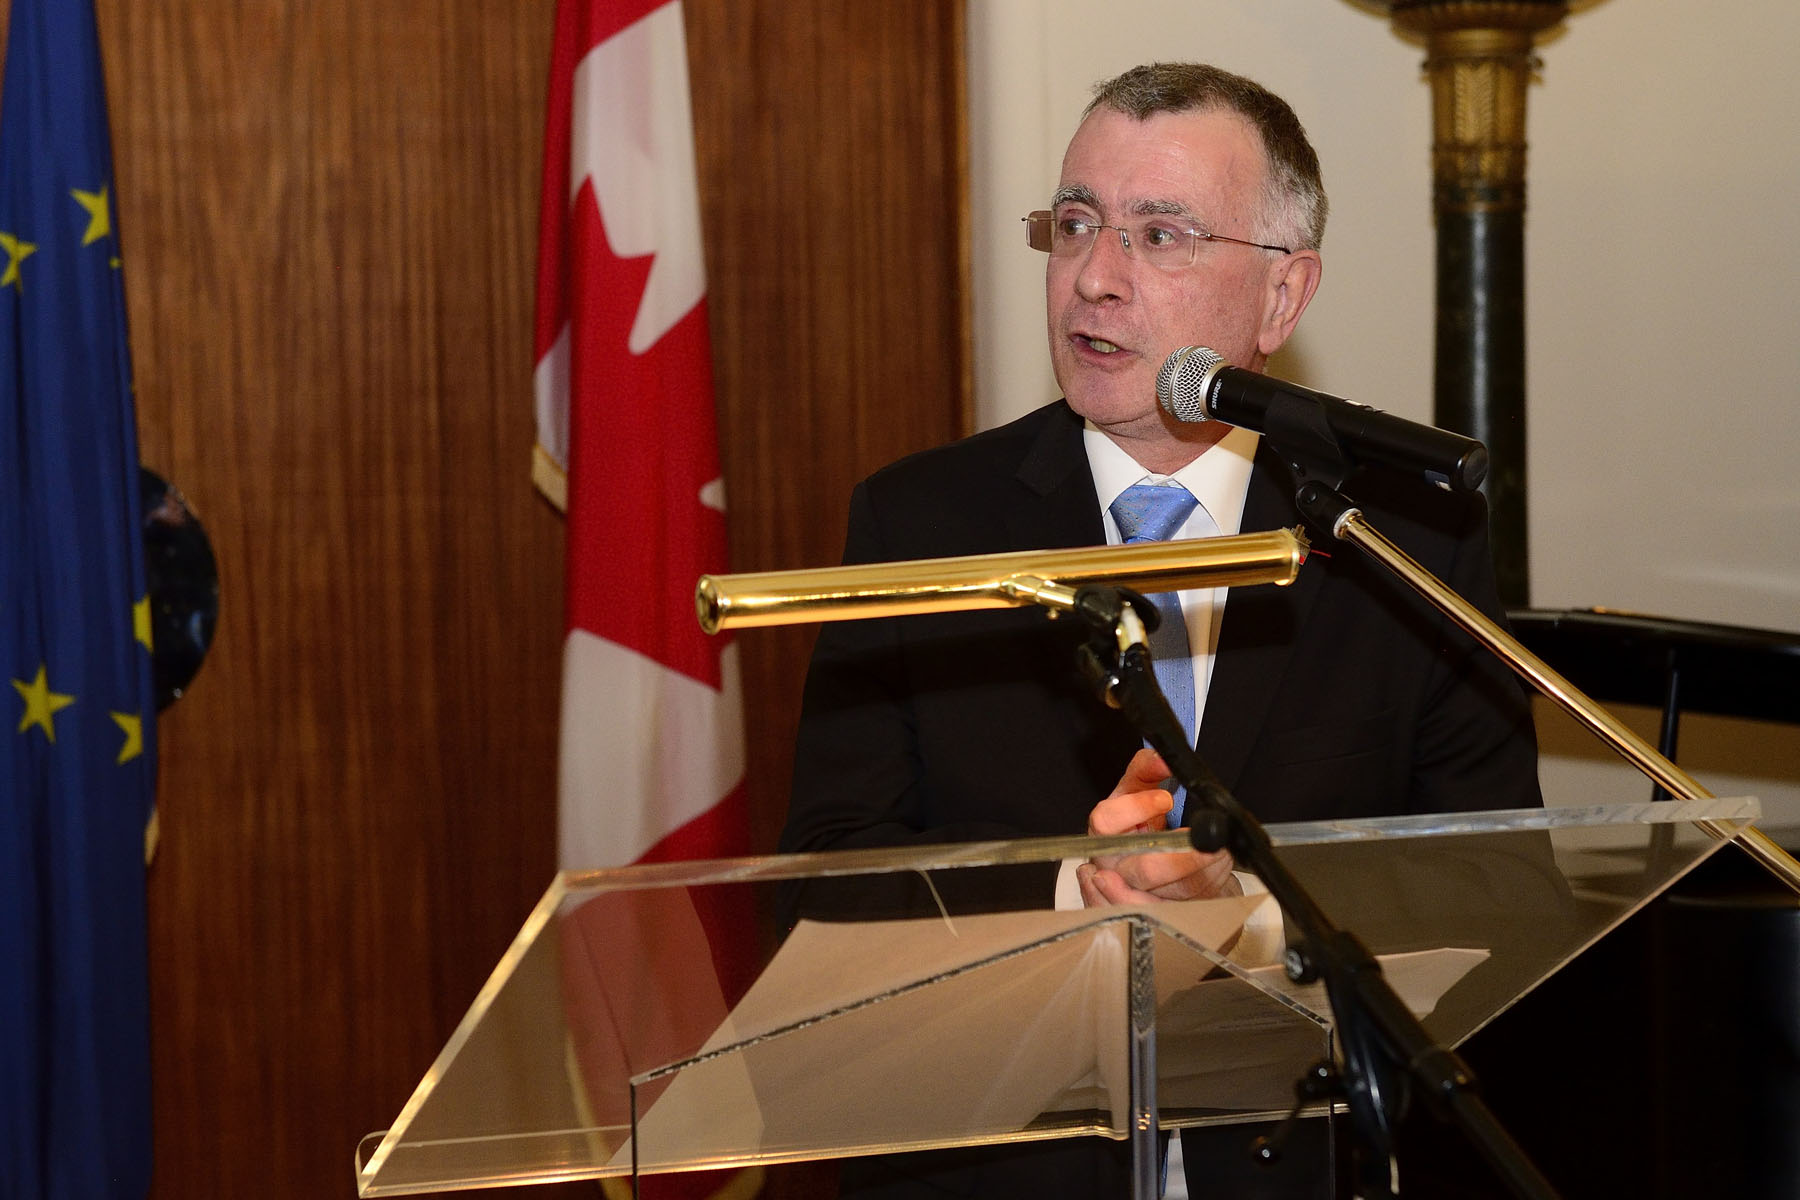 His Excellency Nicolas Chapuis, Ambassador of France to Canada, said welcoming remarks.